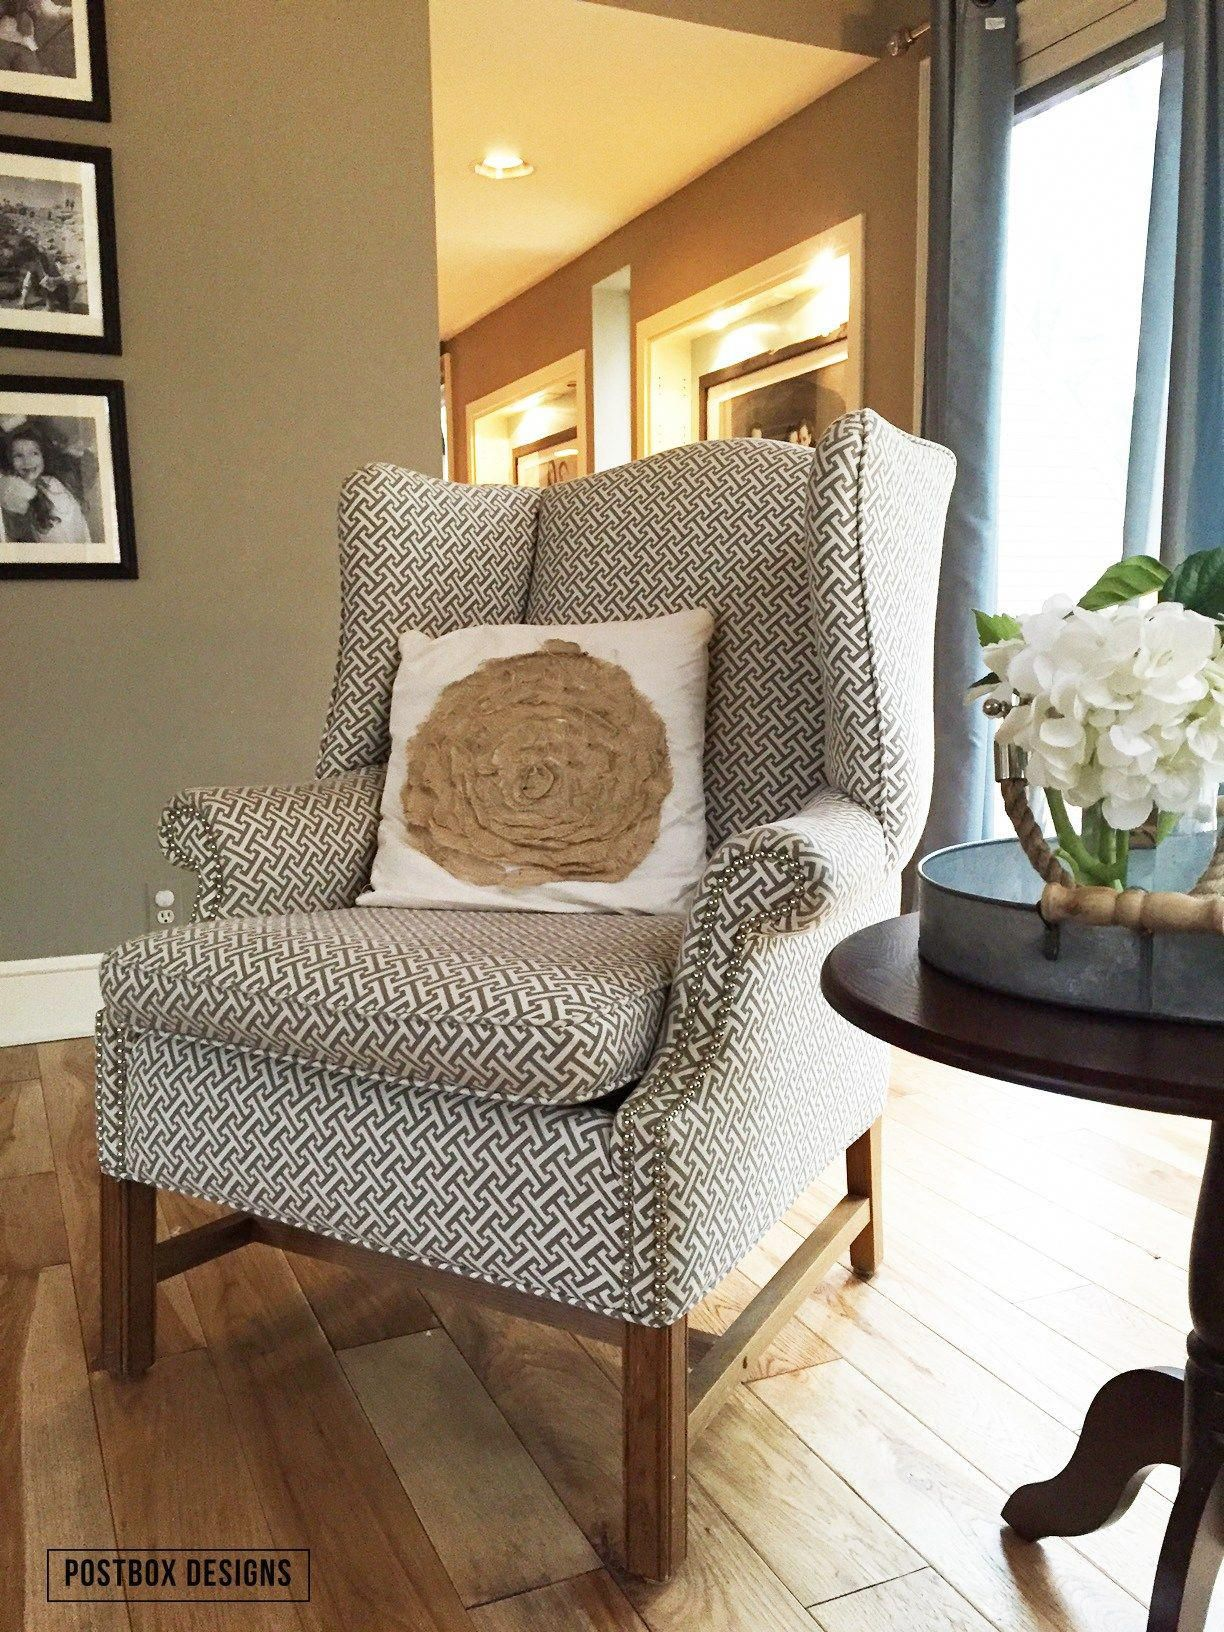 Home decor ideas front room decorating designs drawing concepts also rh pinterest